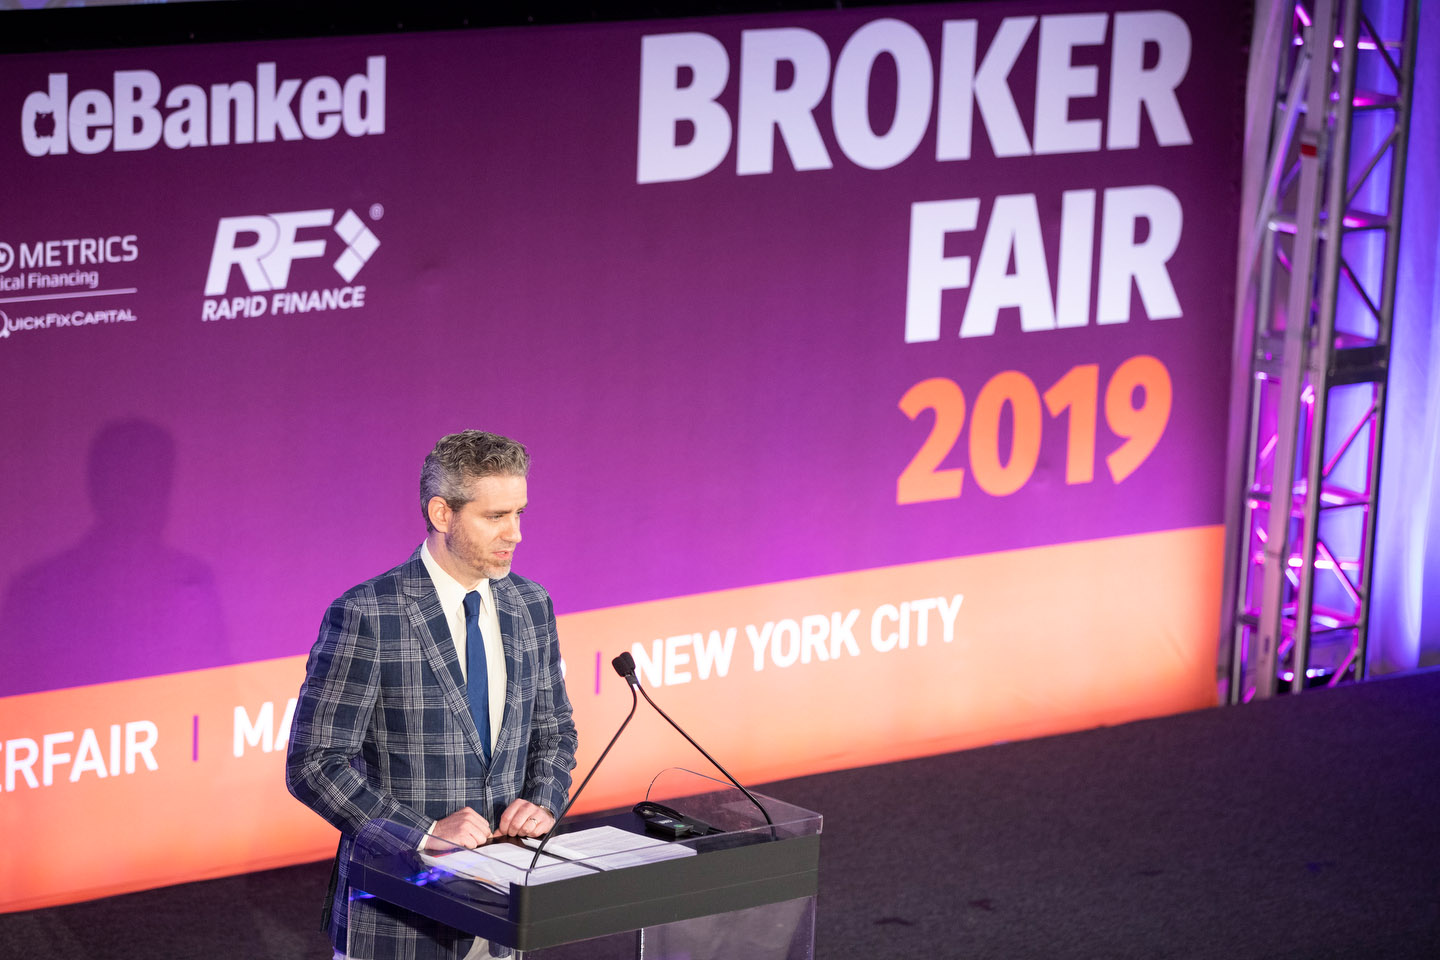 Broker Fair 2019 - Presented by deBanked - 366